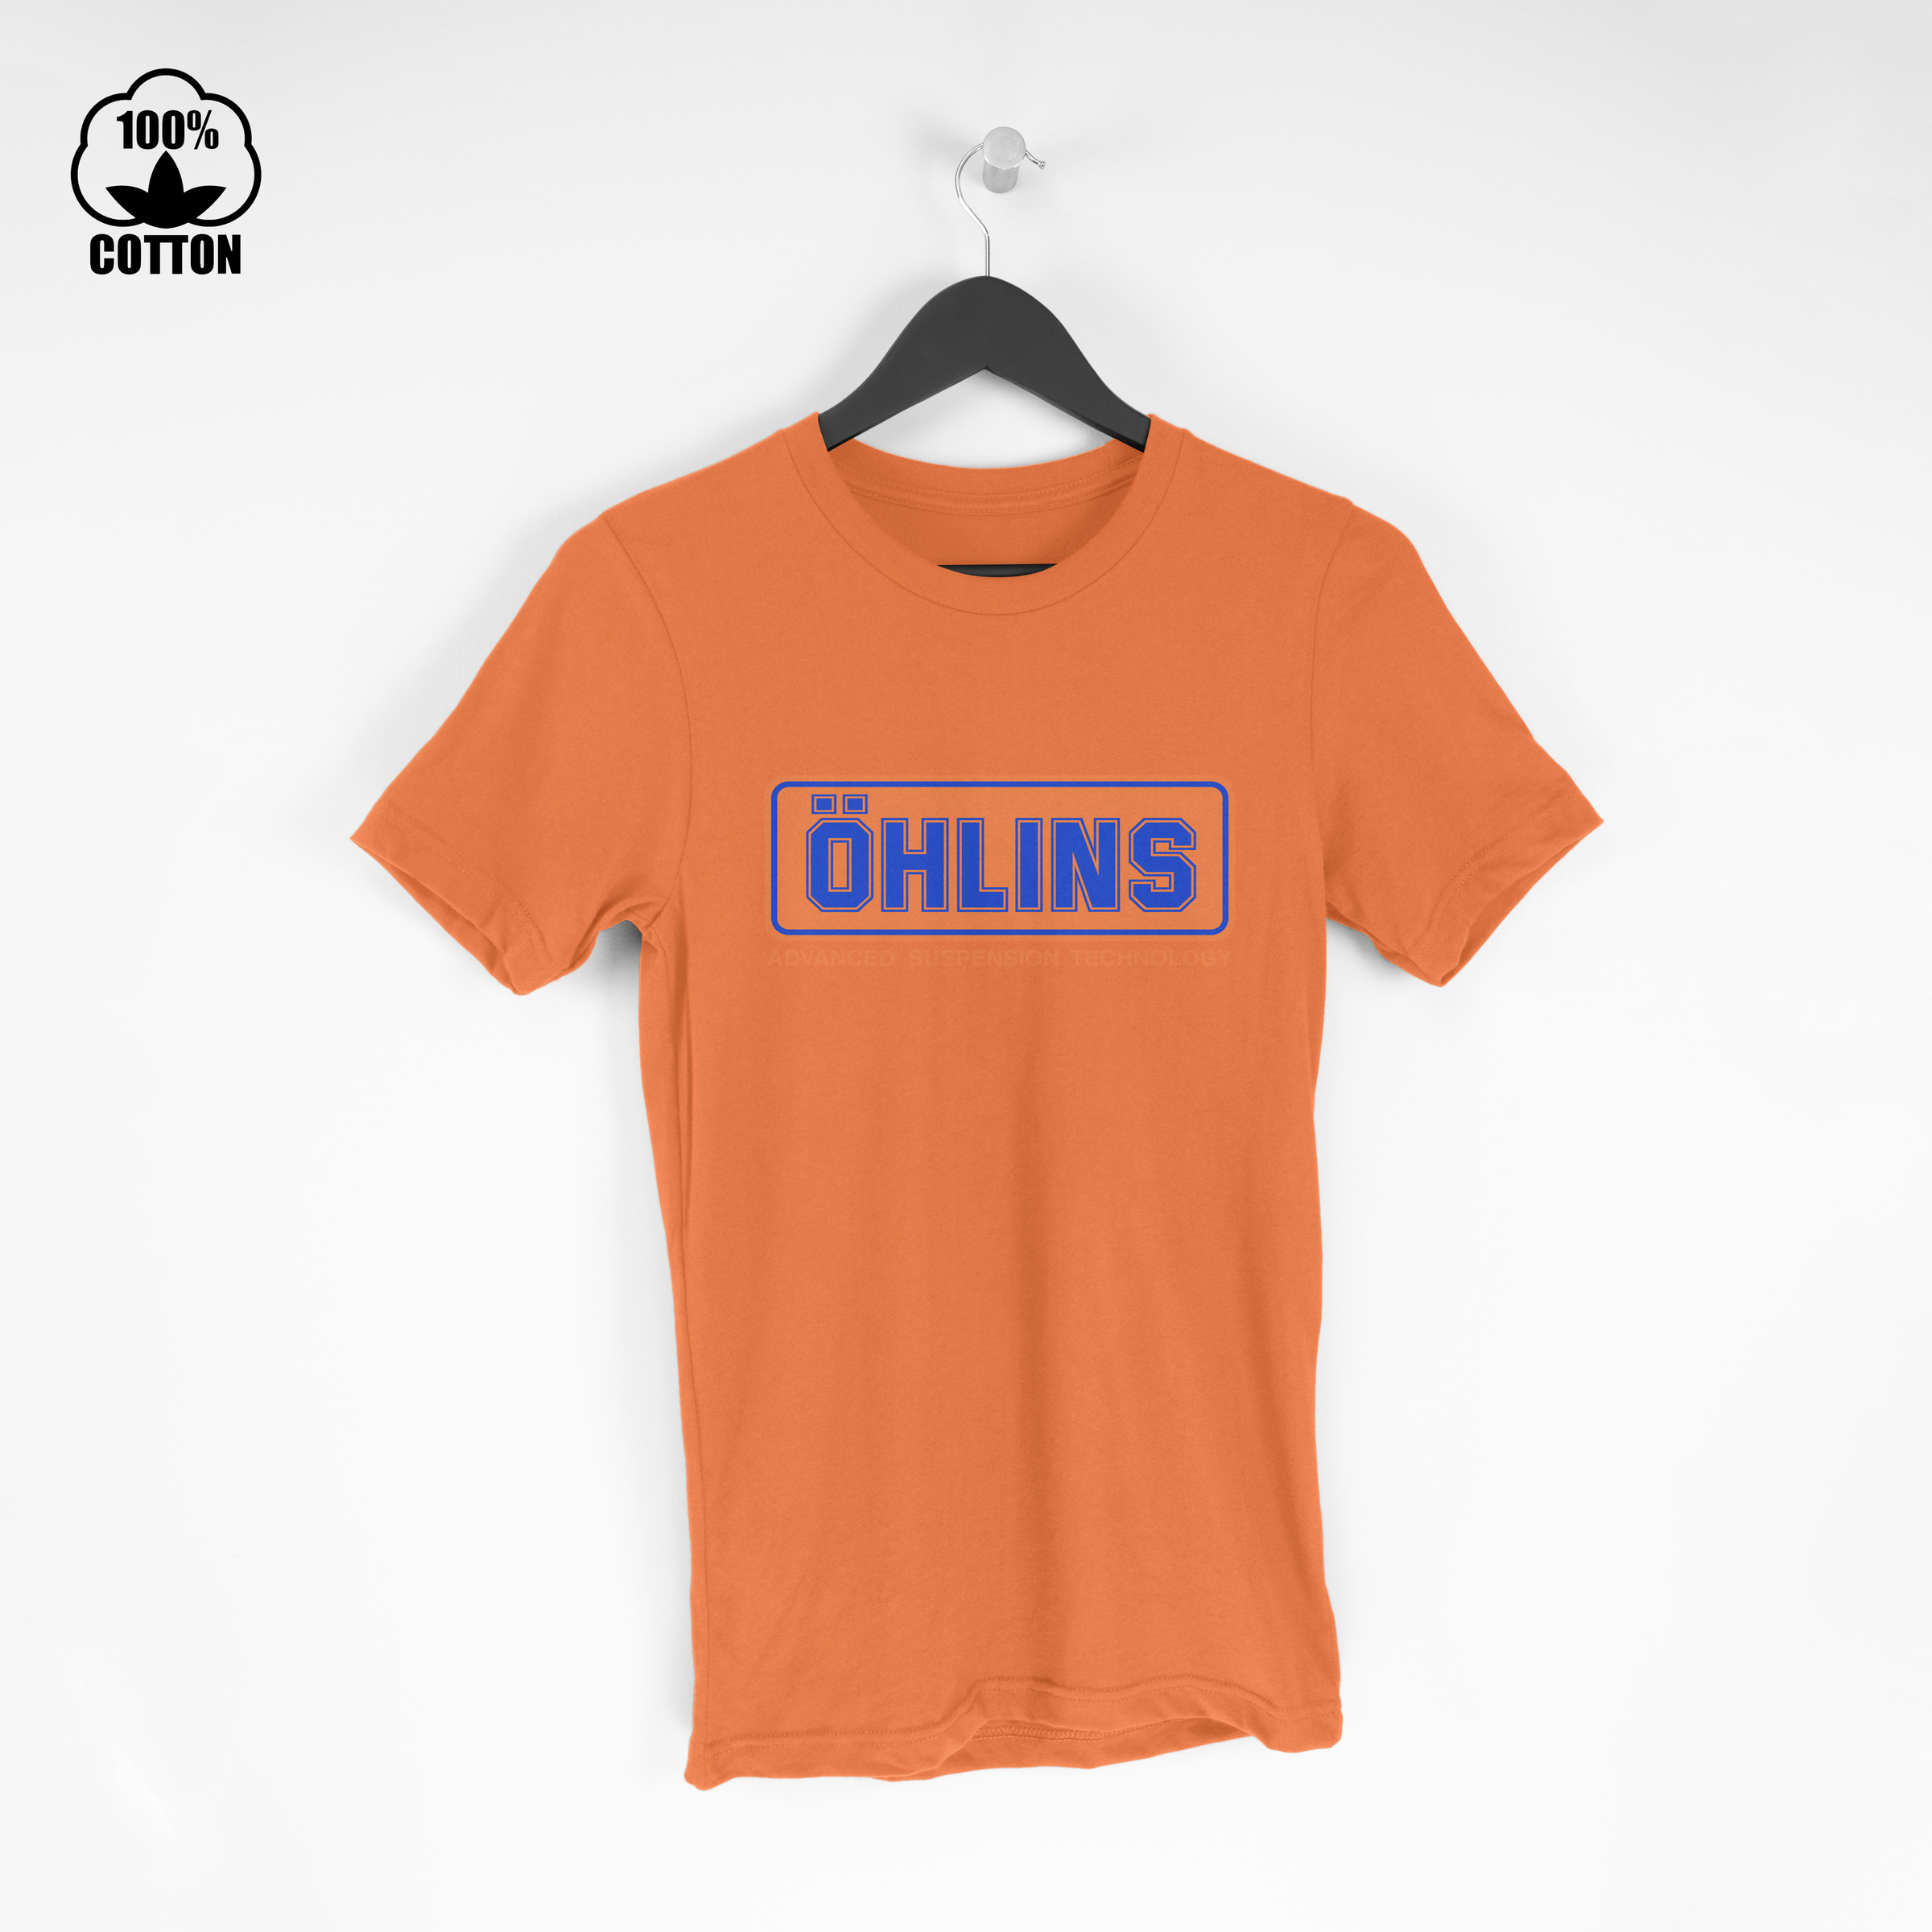 Ohlins Shock Suspension Logo Tee Size S-XXL USA Chocolate.jpg